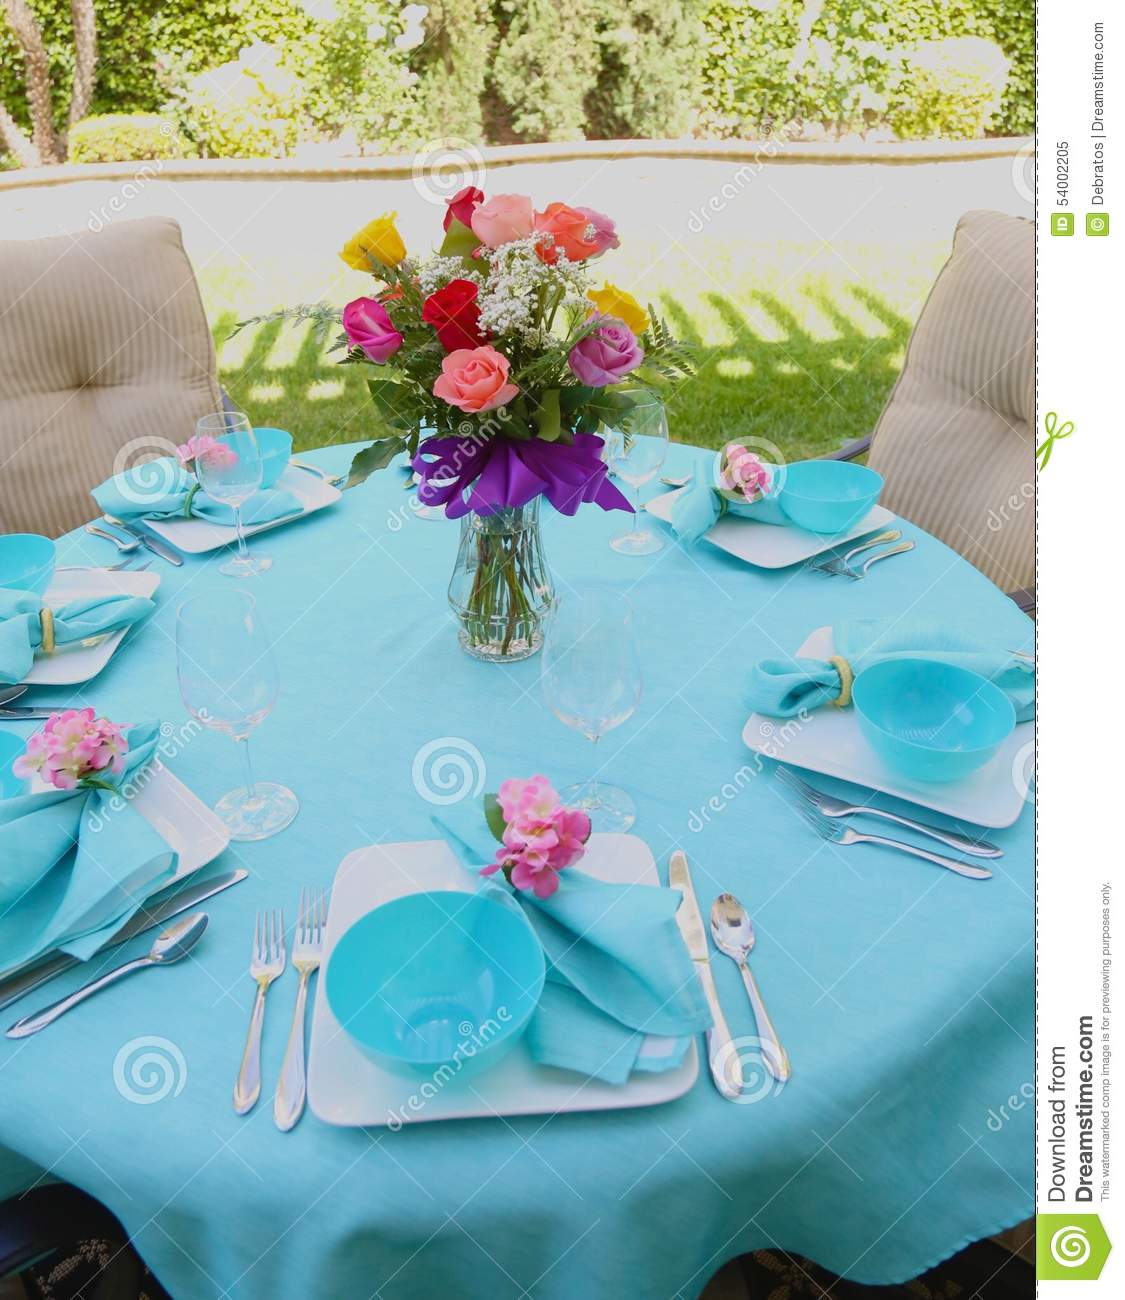 Brunch table setting & Brunch table setting stock image. Image of blue table - 54002205